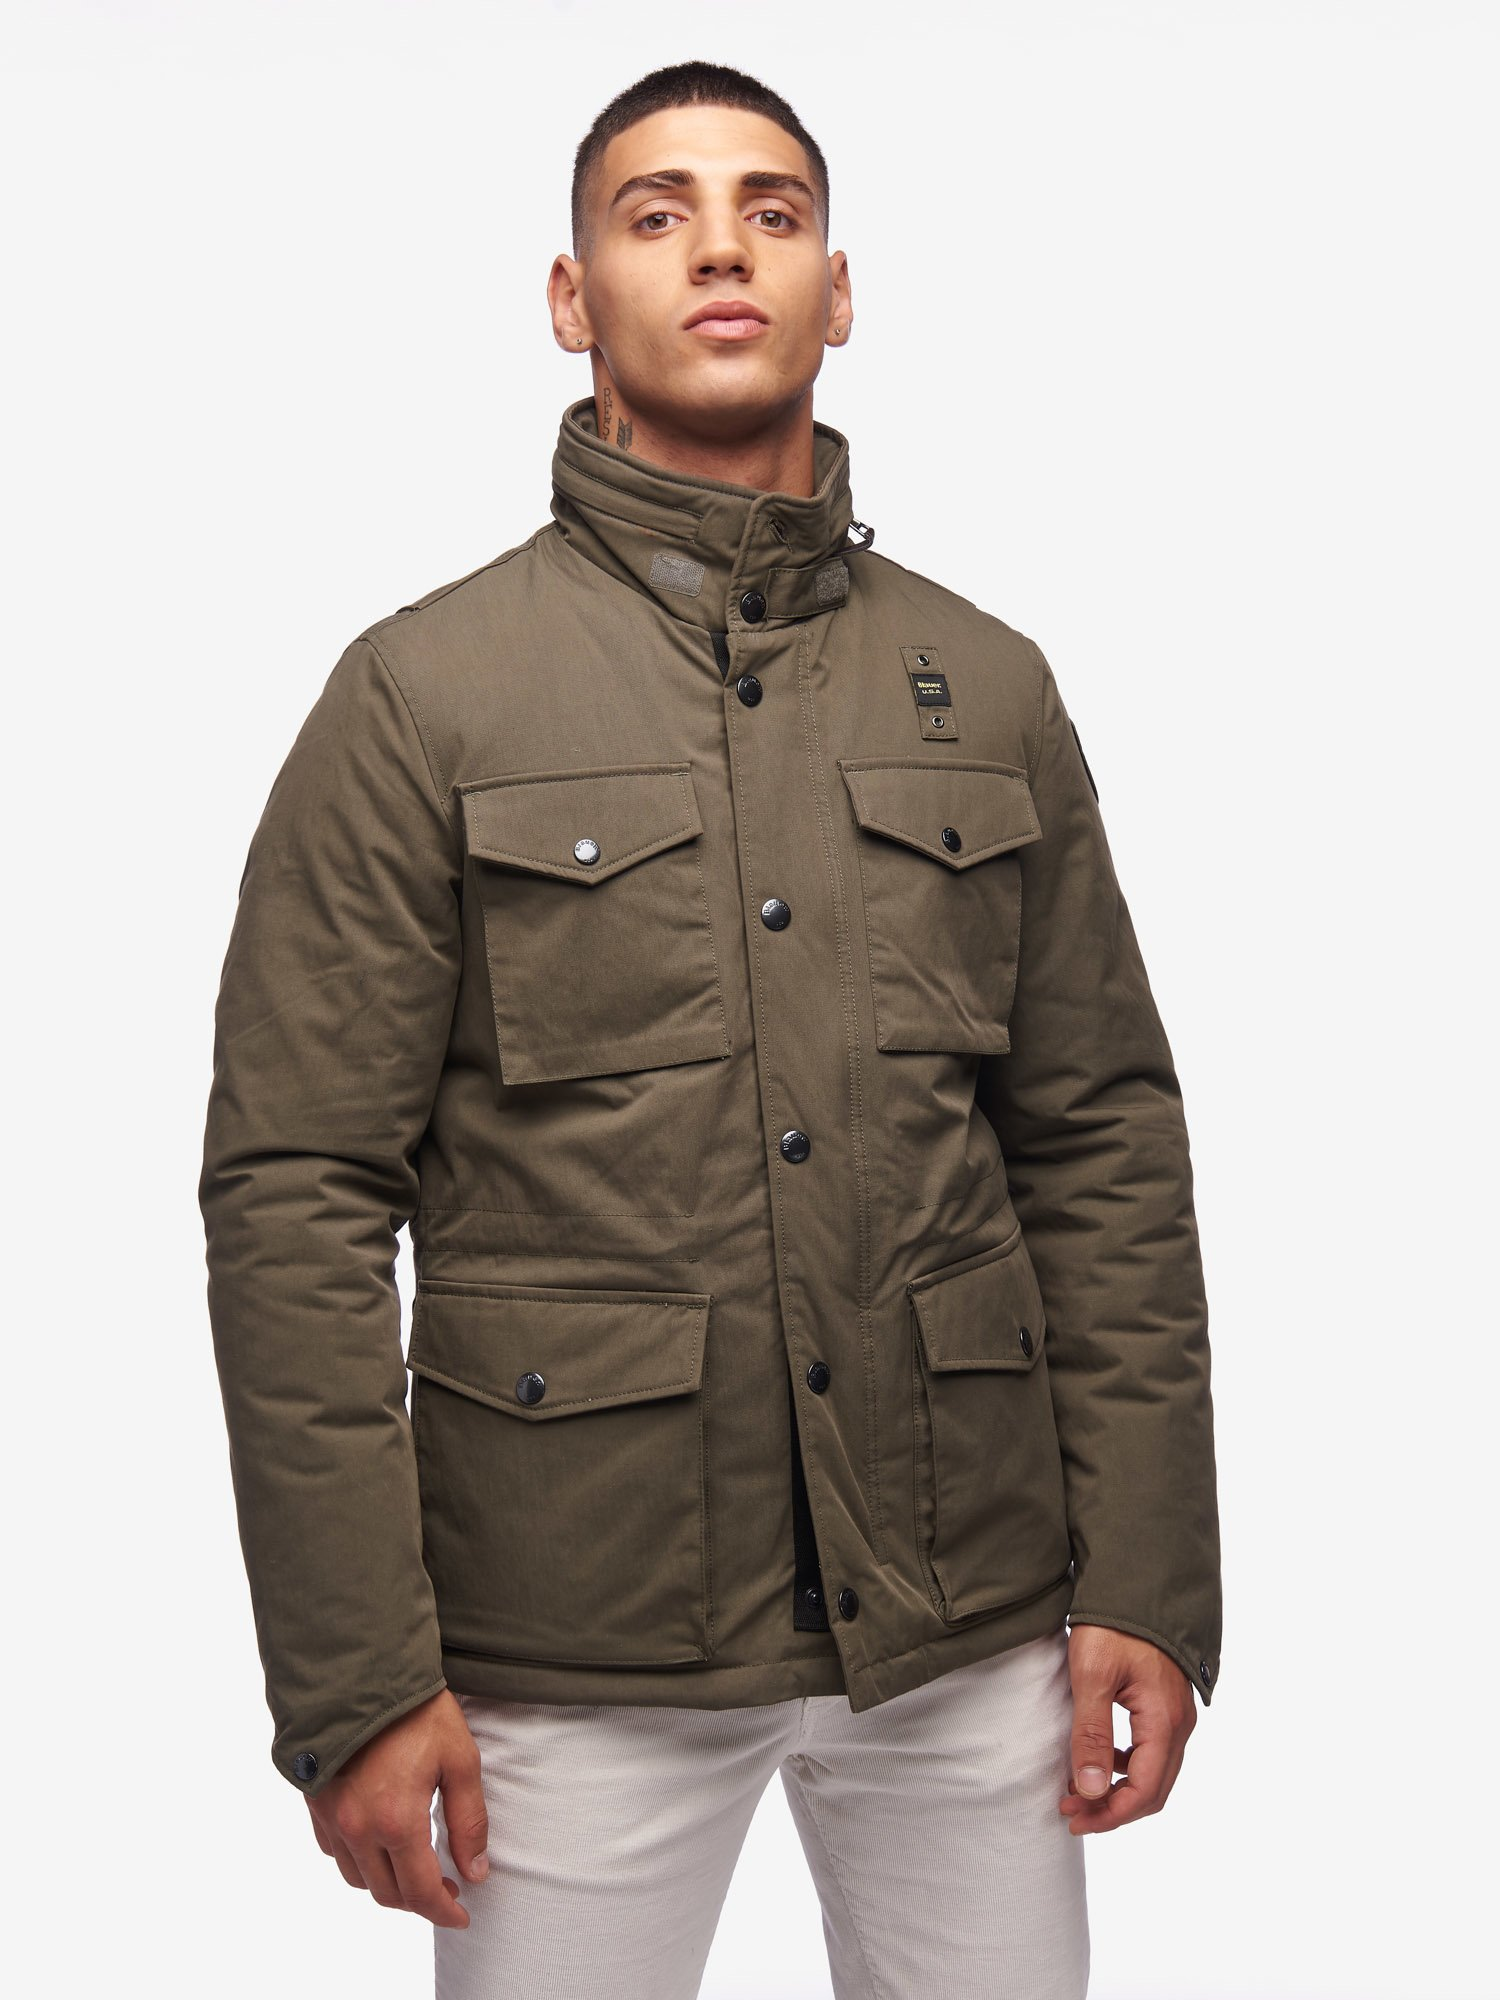 GRAY MILITARY FIELD JACKET IN GABARDINE - Blauer